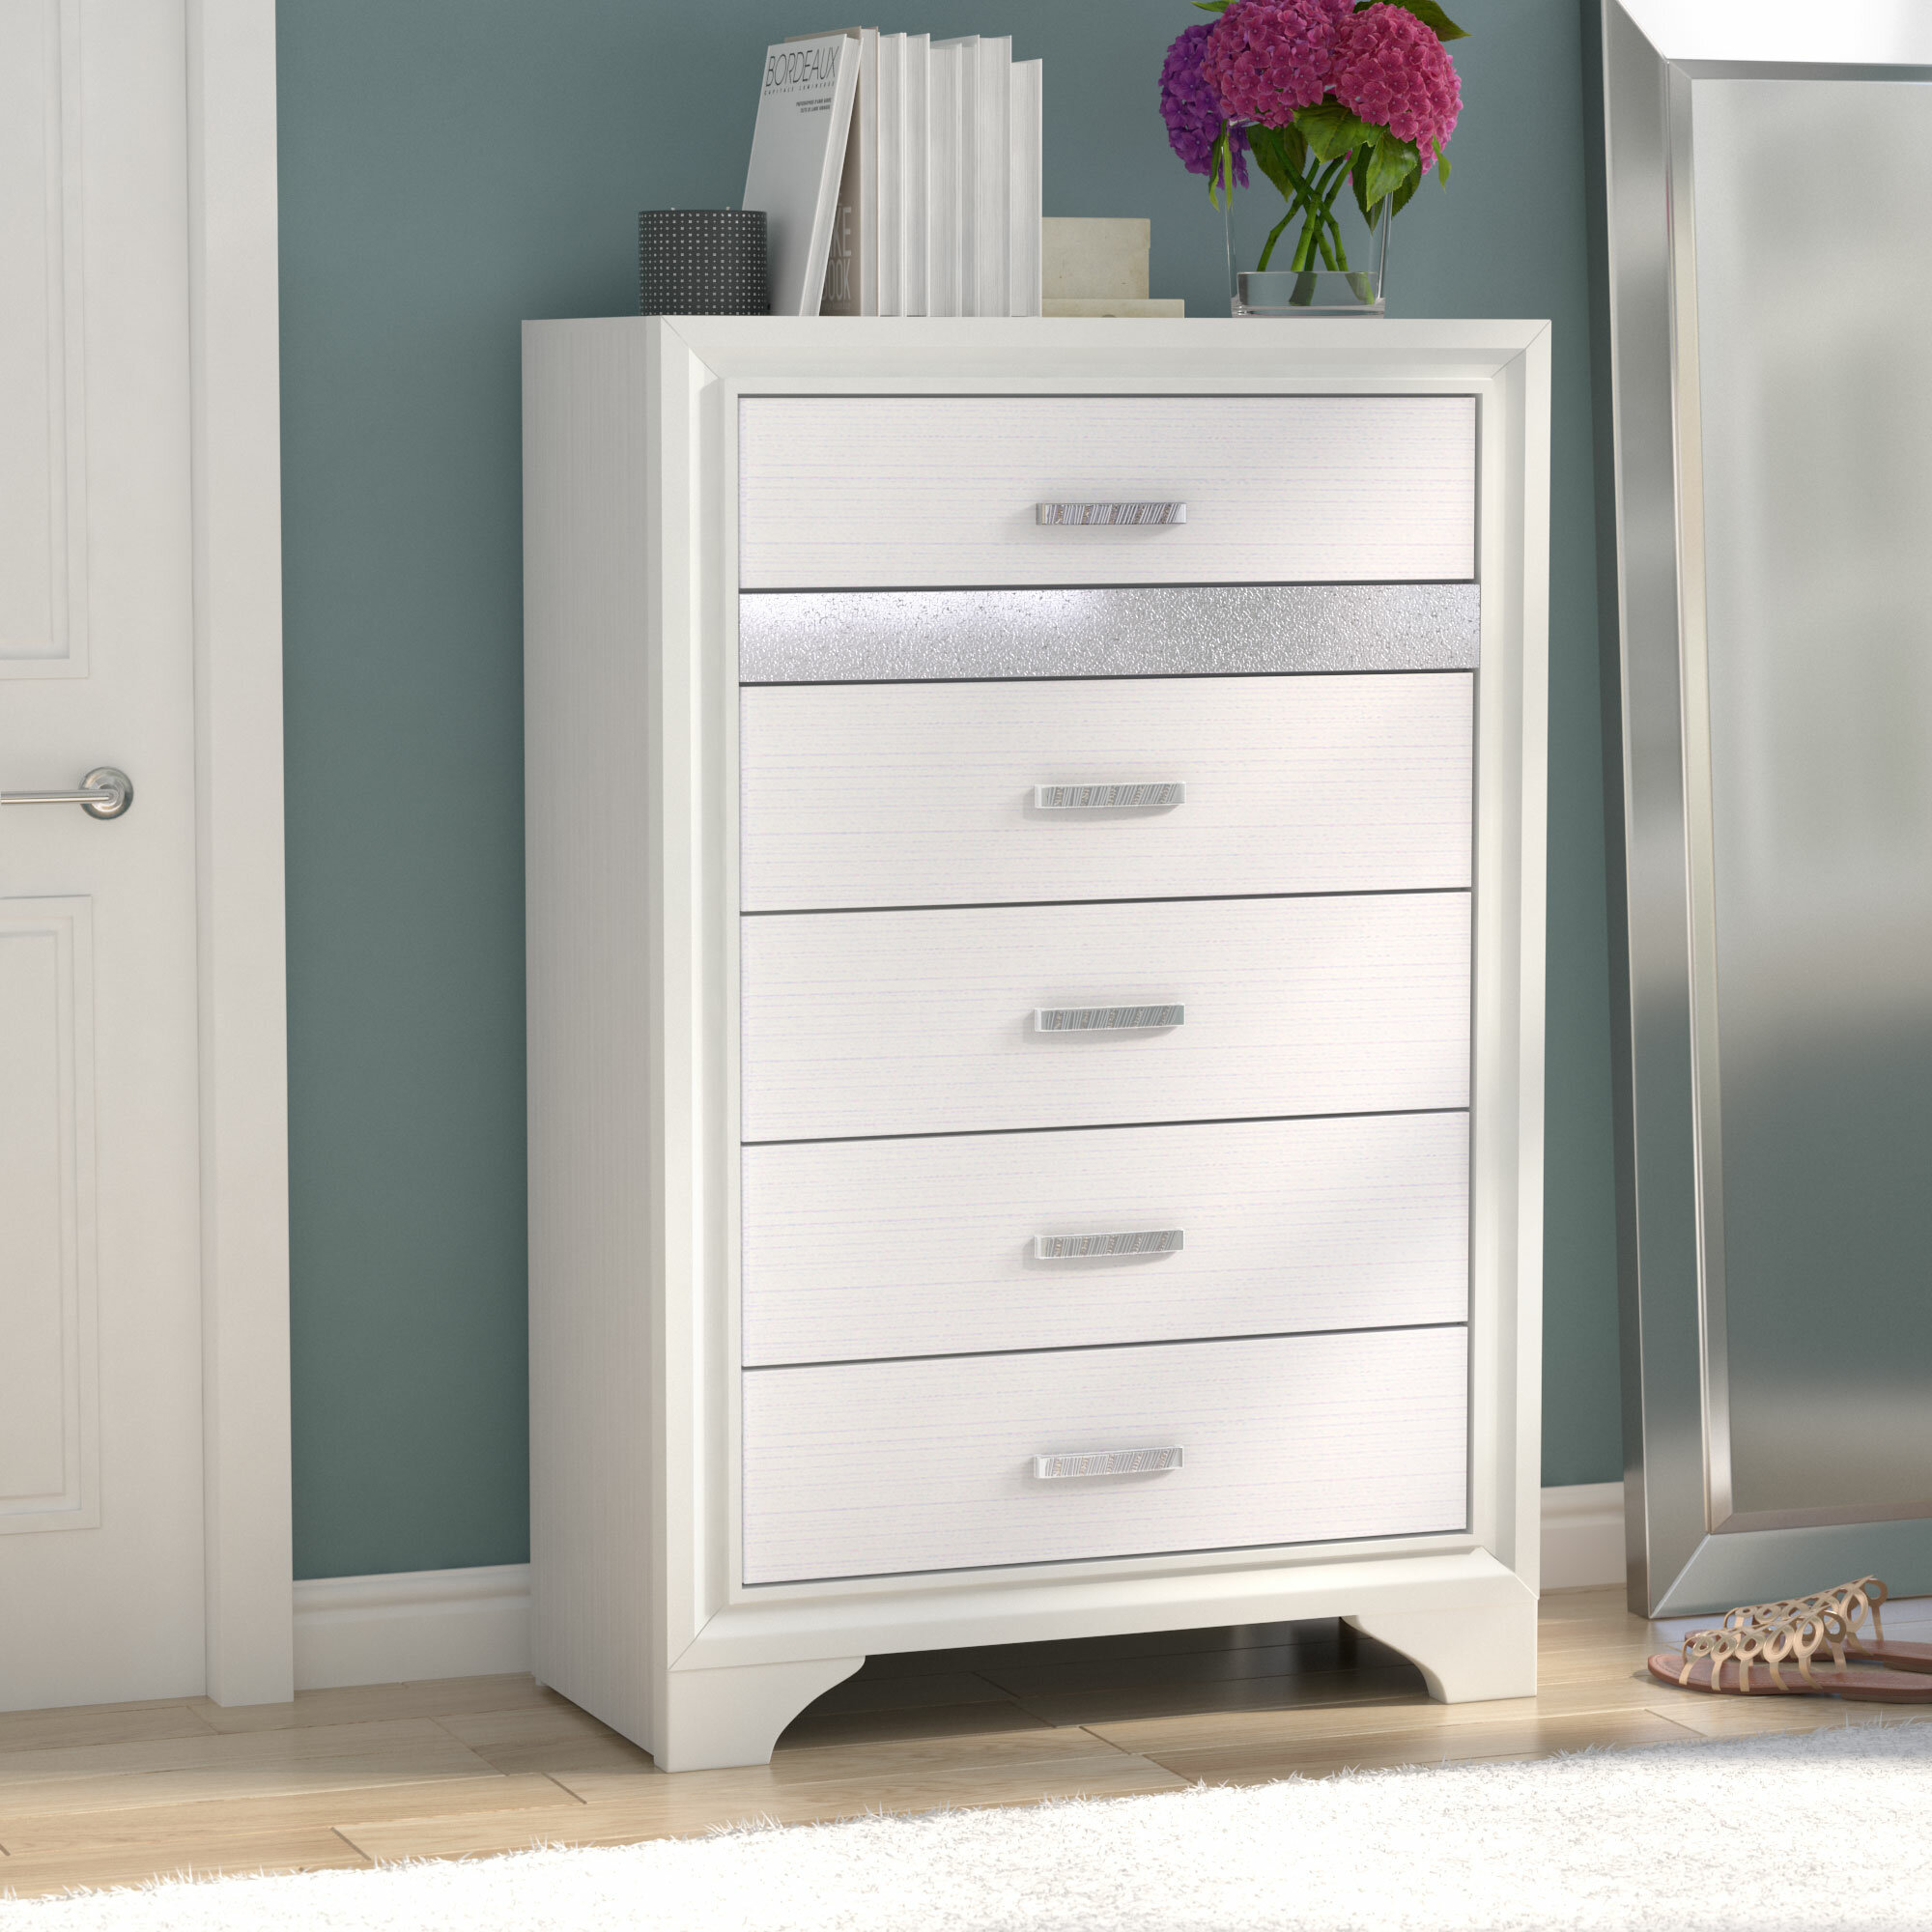 Willa Arlo Interiors Alessandra 5 Drawer Chest & Reviews